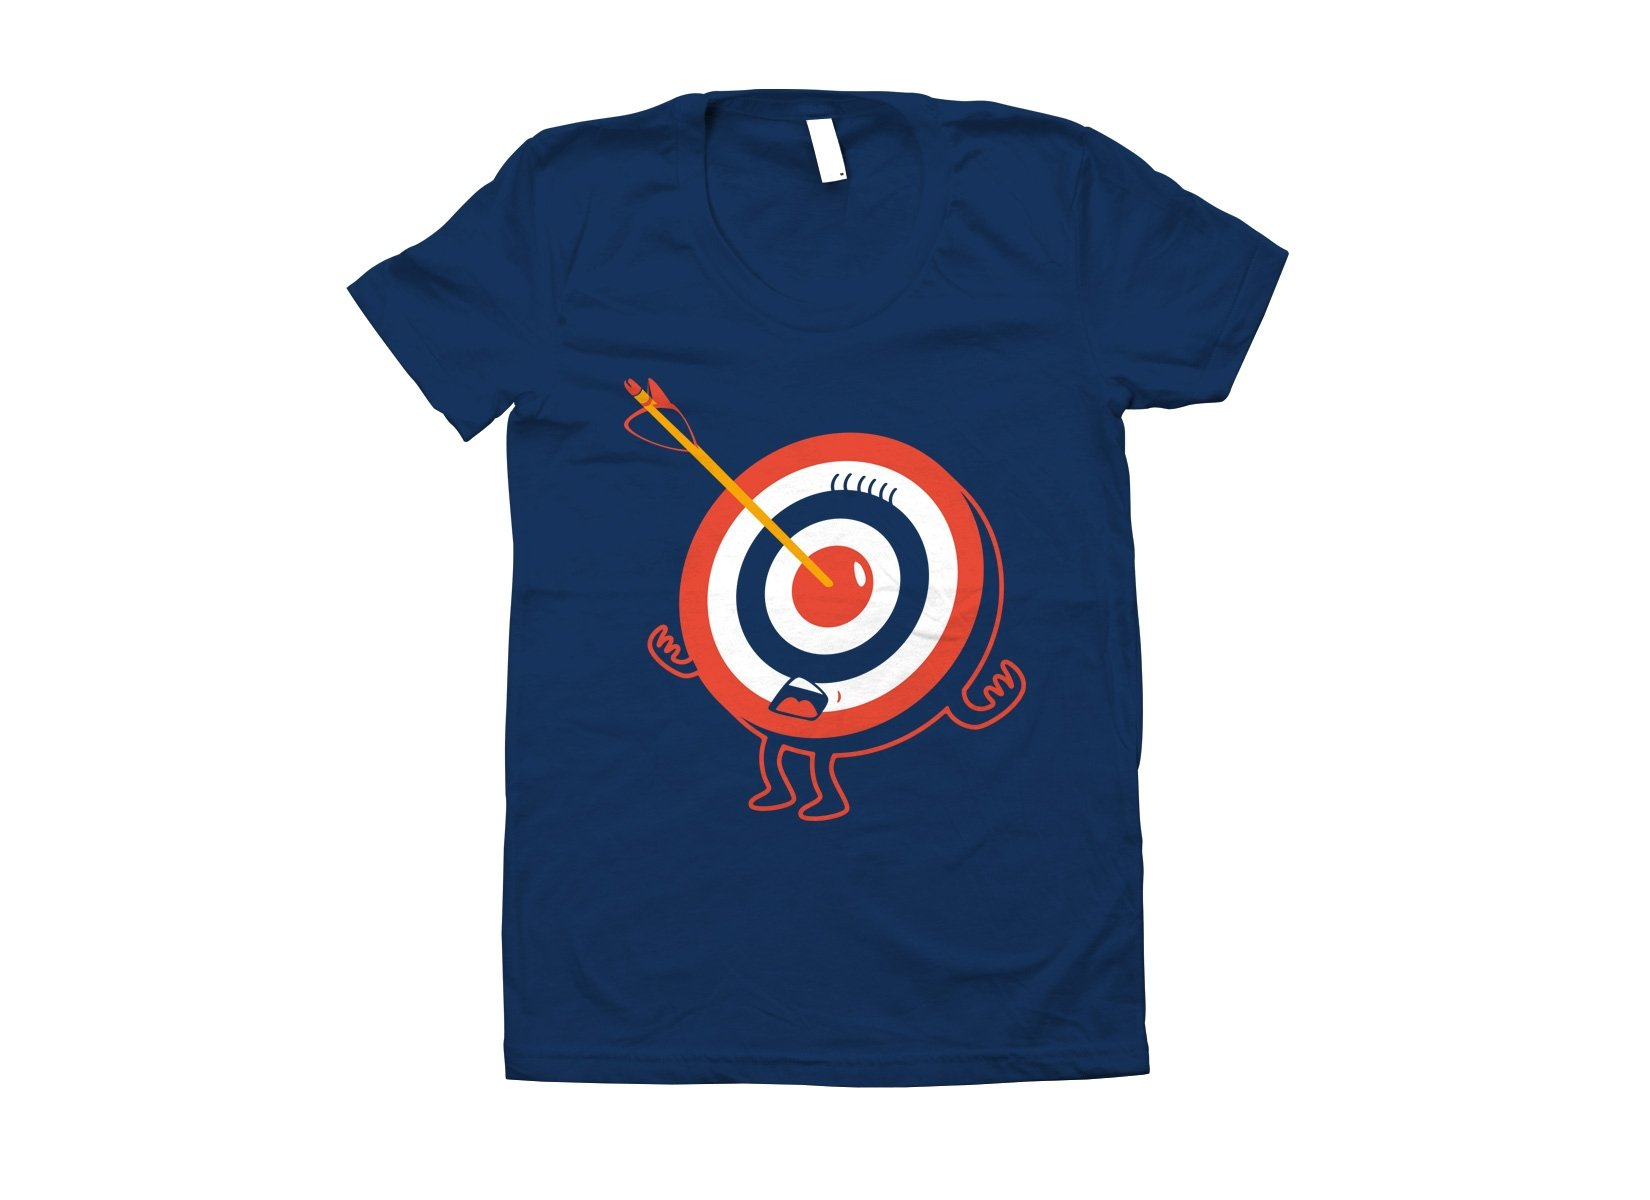 Bullseye on Juniors T-Shirt